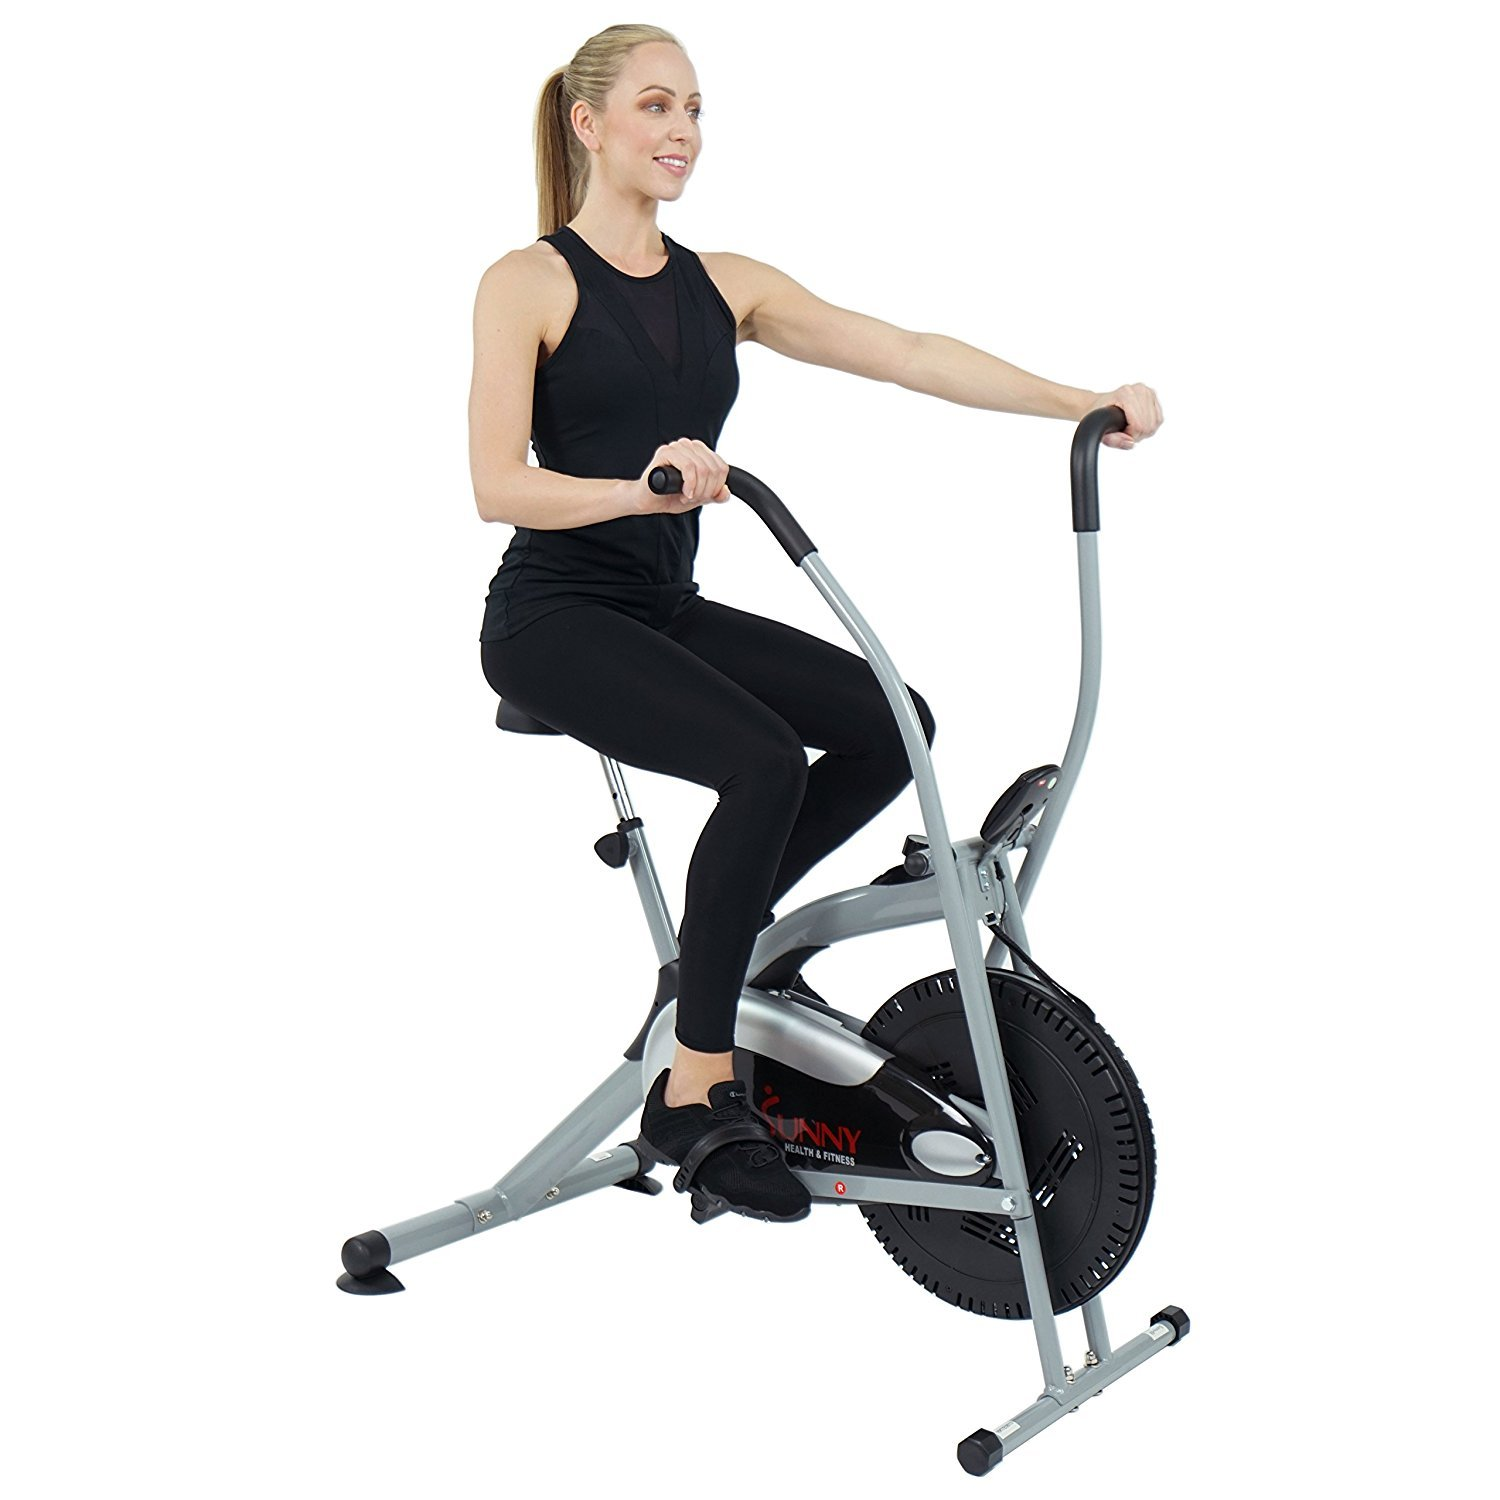 Sunny Health & Fitness SF-B2621 Cross Training Fan Upright Exercise Bike w/ Arm Exercisers by Sunny Health & Fitness